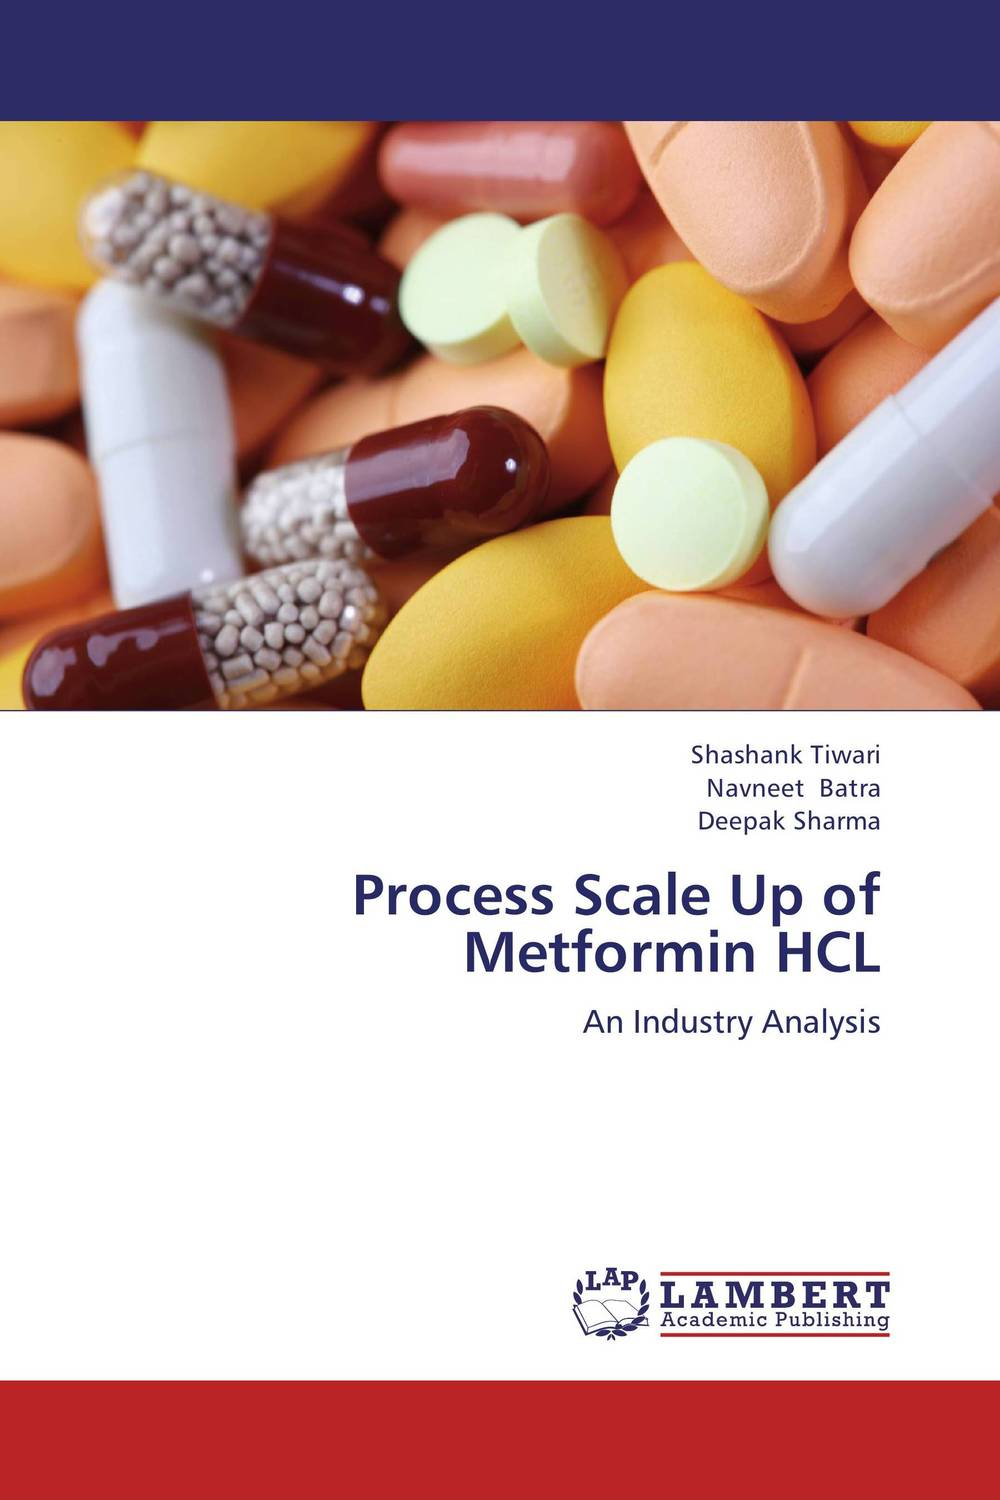 Process Scale Up of Metformin HCL practical batch process management